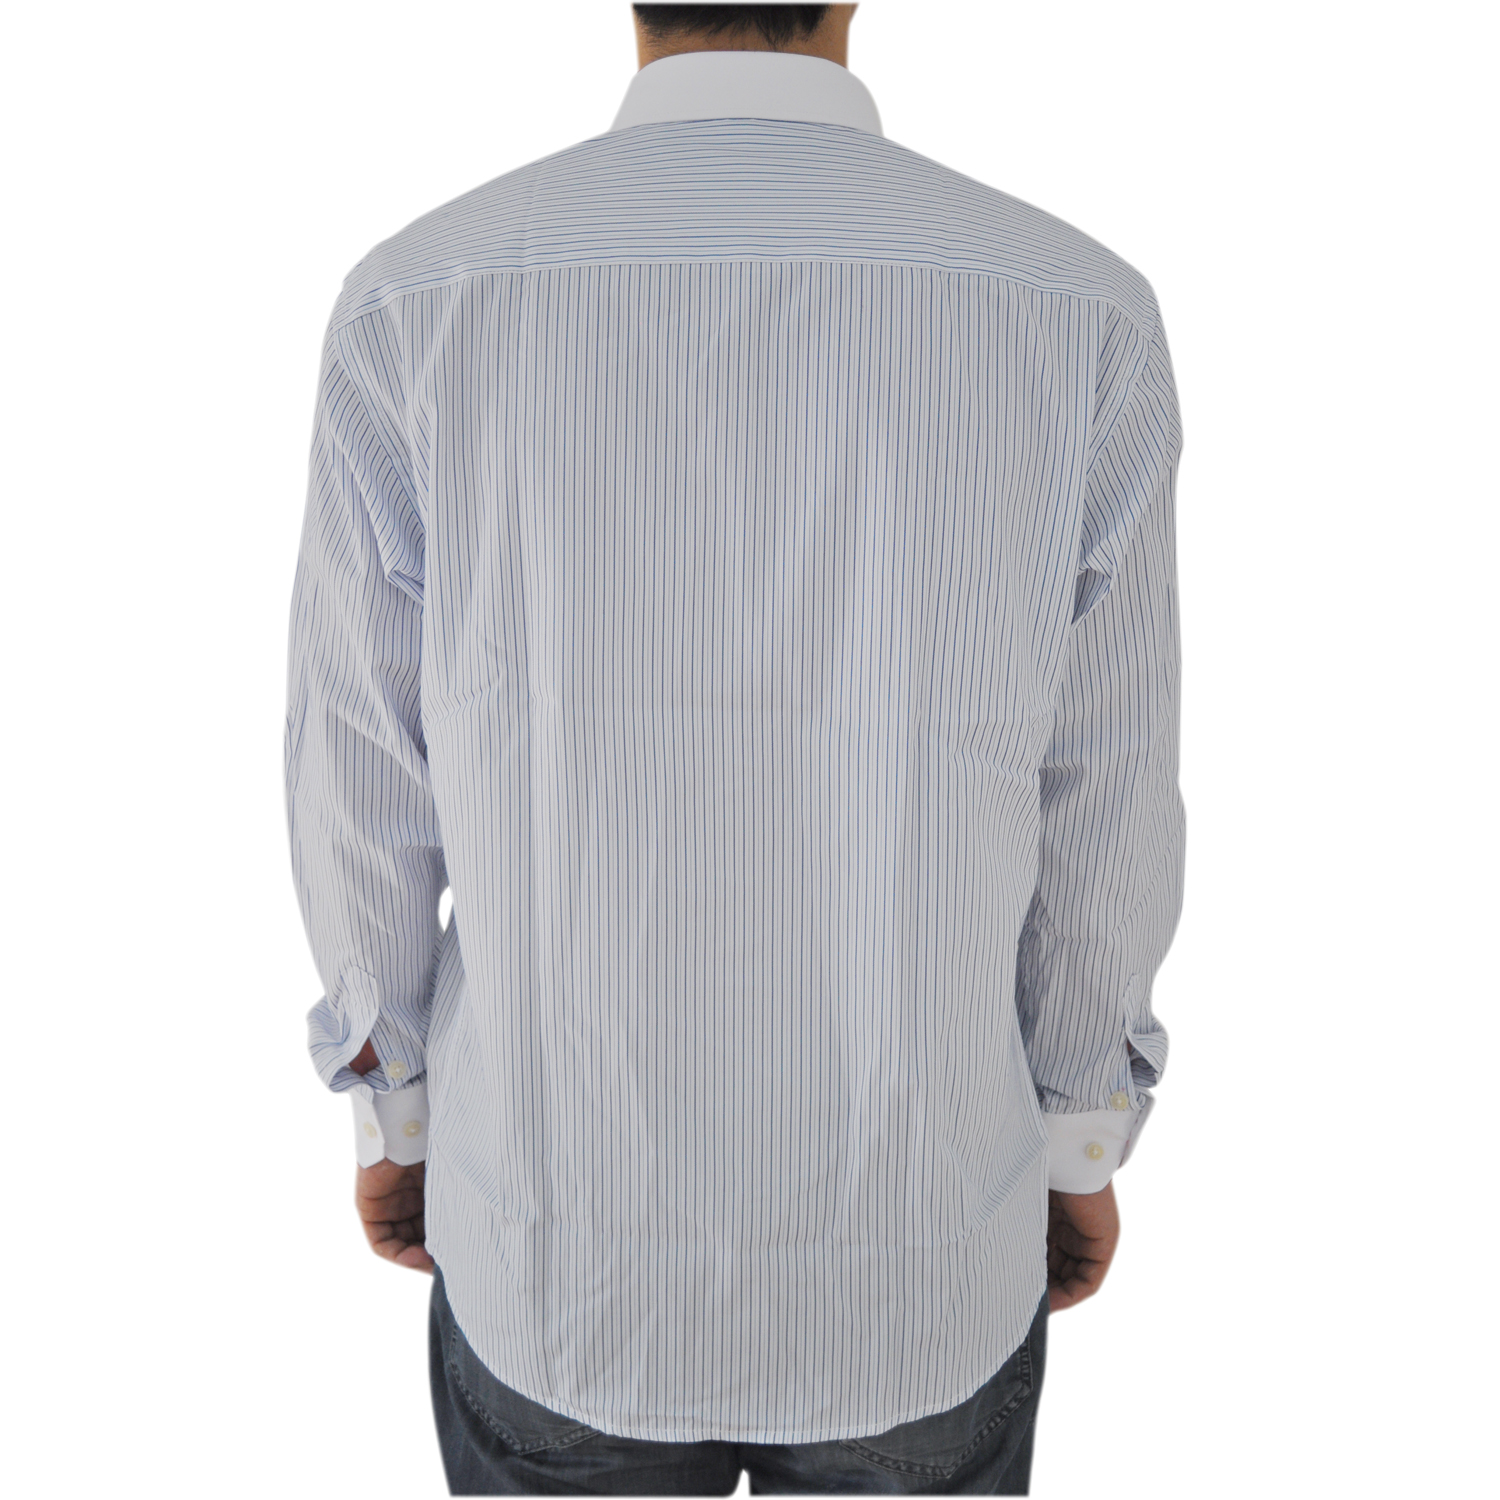 c7e99bfcc6a Men Shirts Pinstripe Long Sleeve Man Dress Shirt Cotton Slim White Collar  New Casual Social Shirt 8101